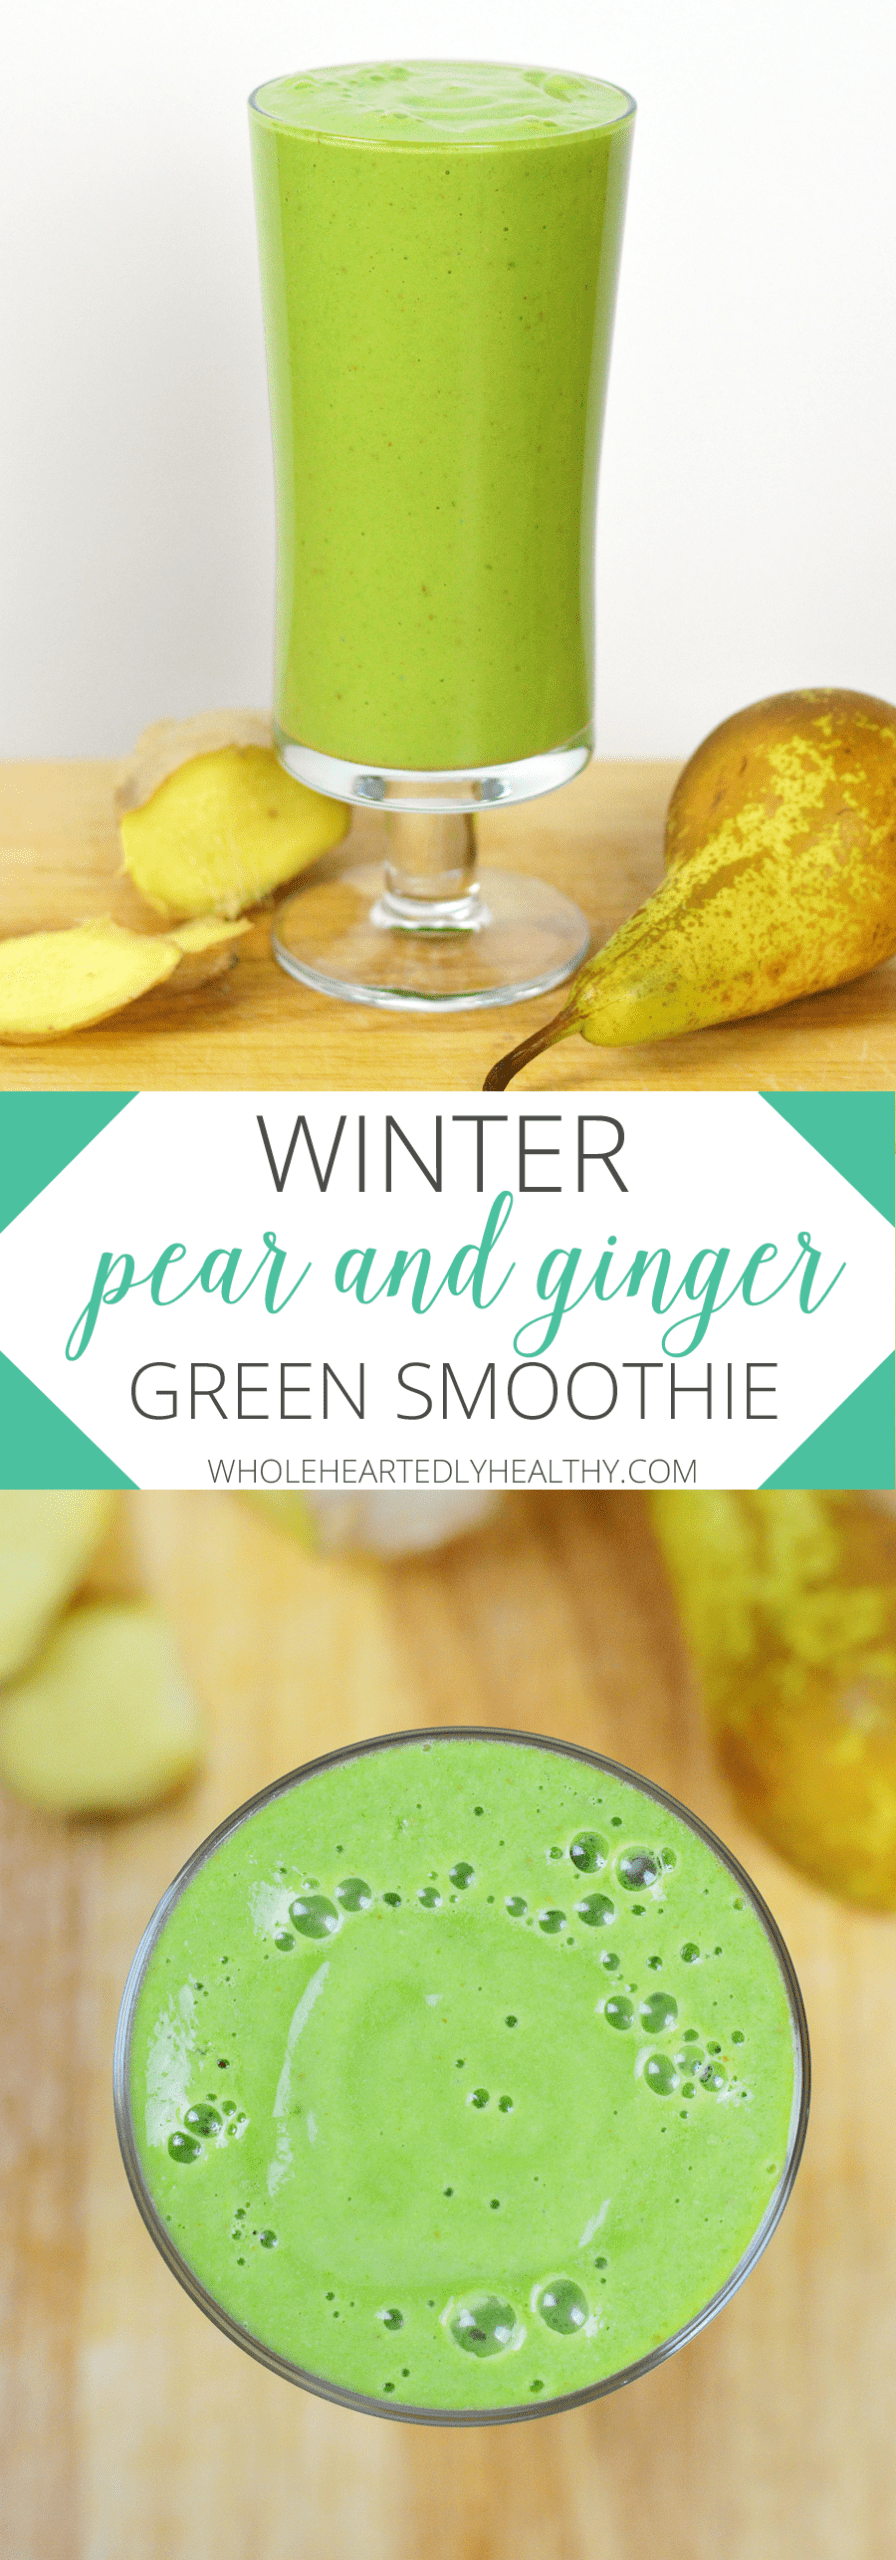 Winter pear and ginger green smoothie